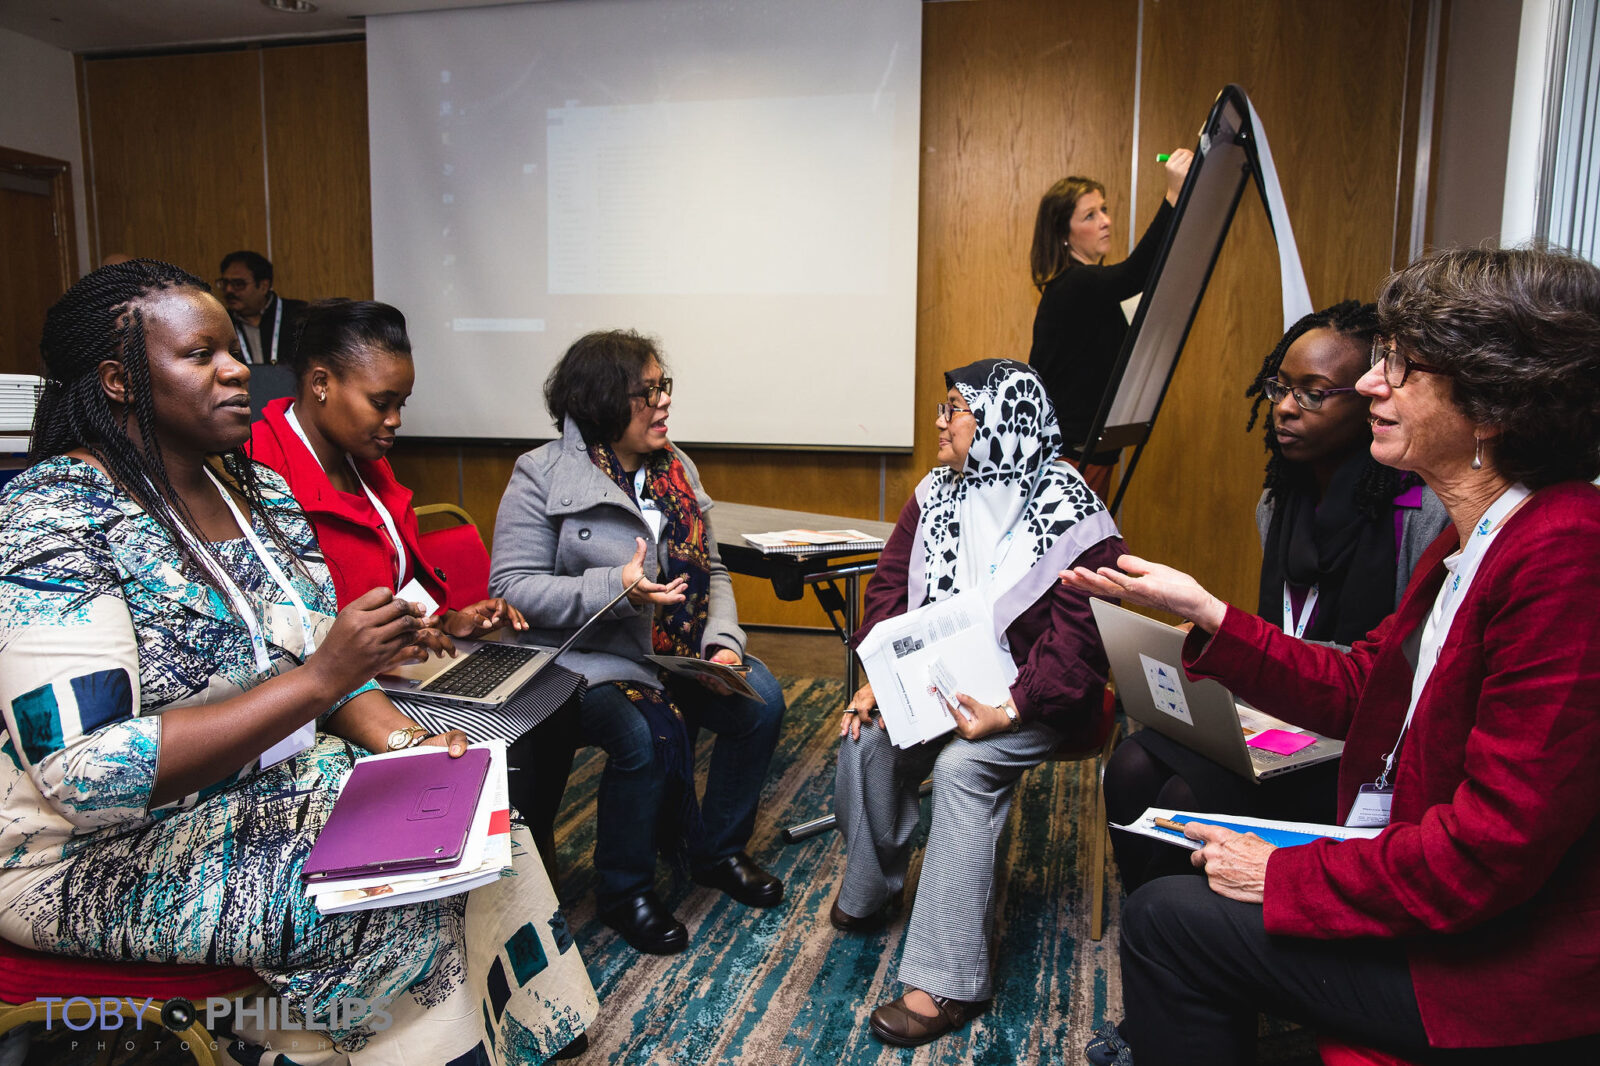 Women talking in a conference room during HSR2018